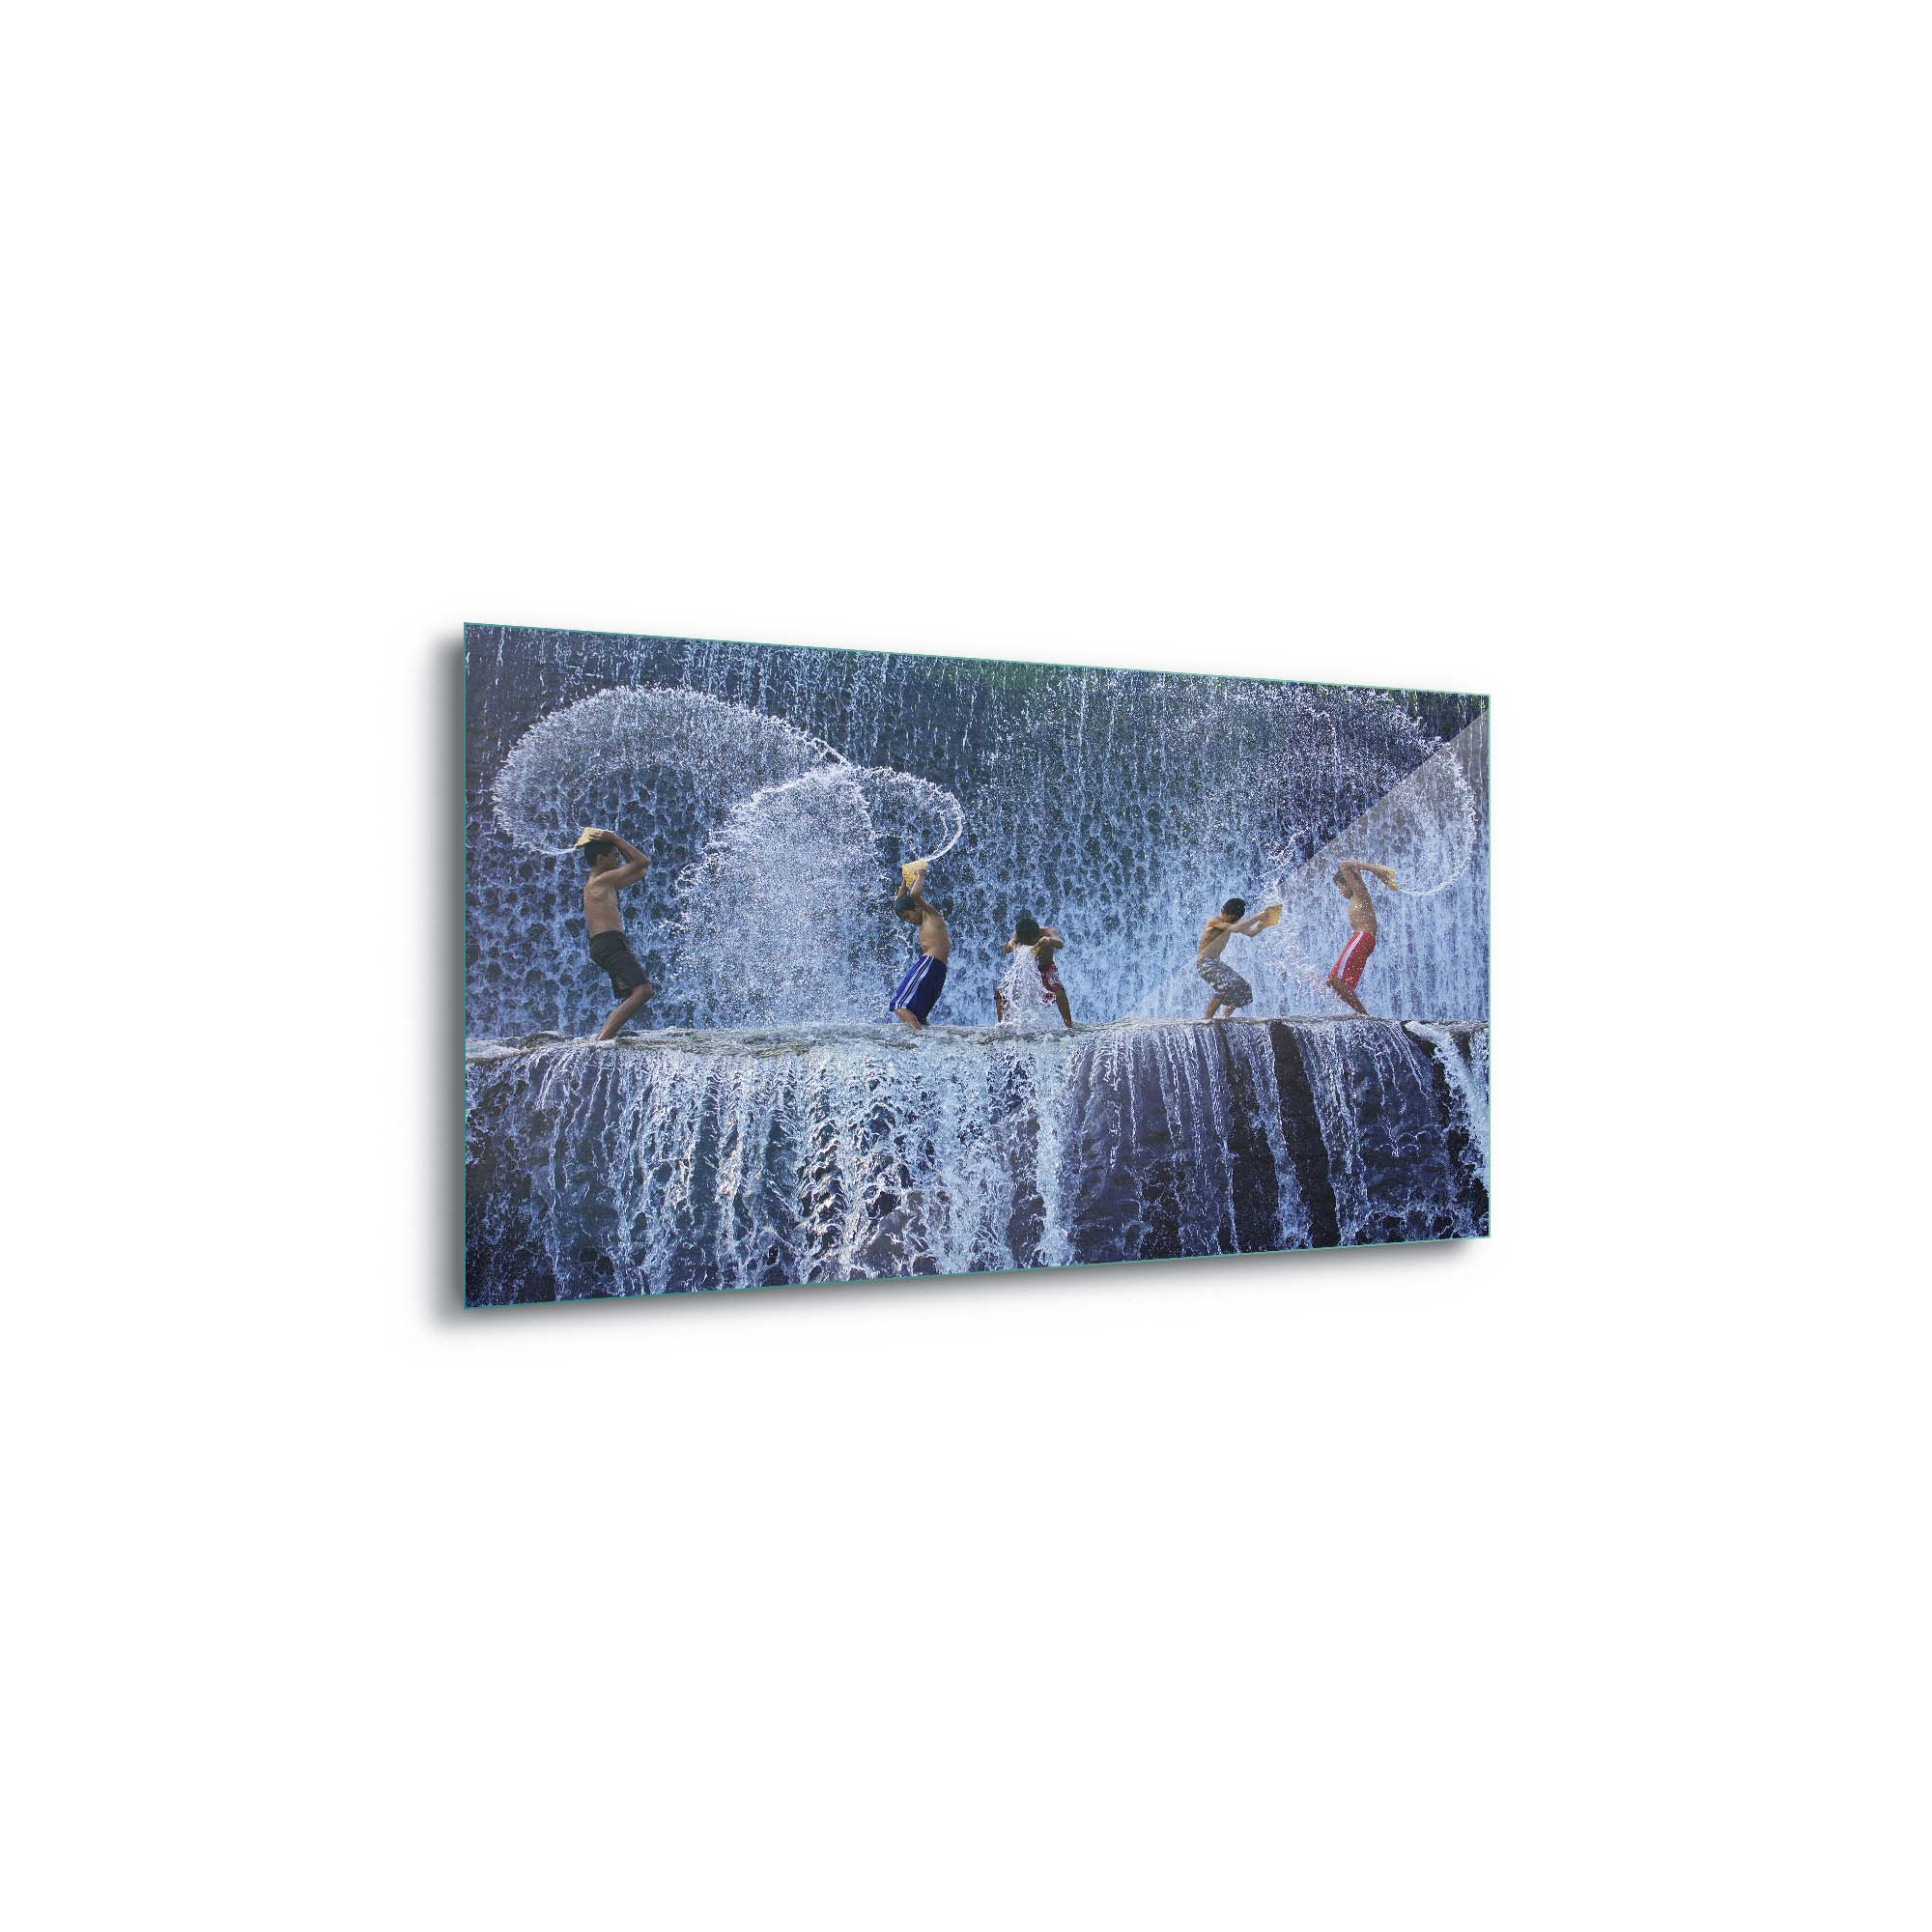 Glass printed Kids Playing in the Water